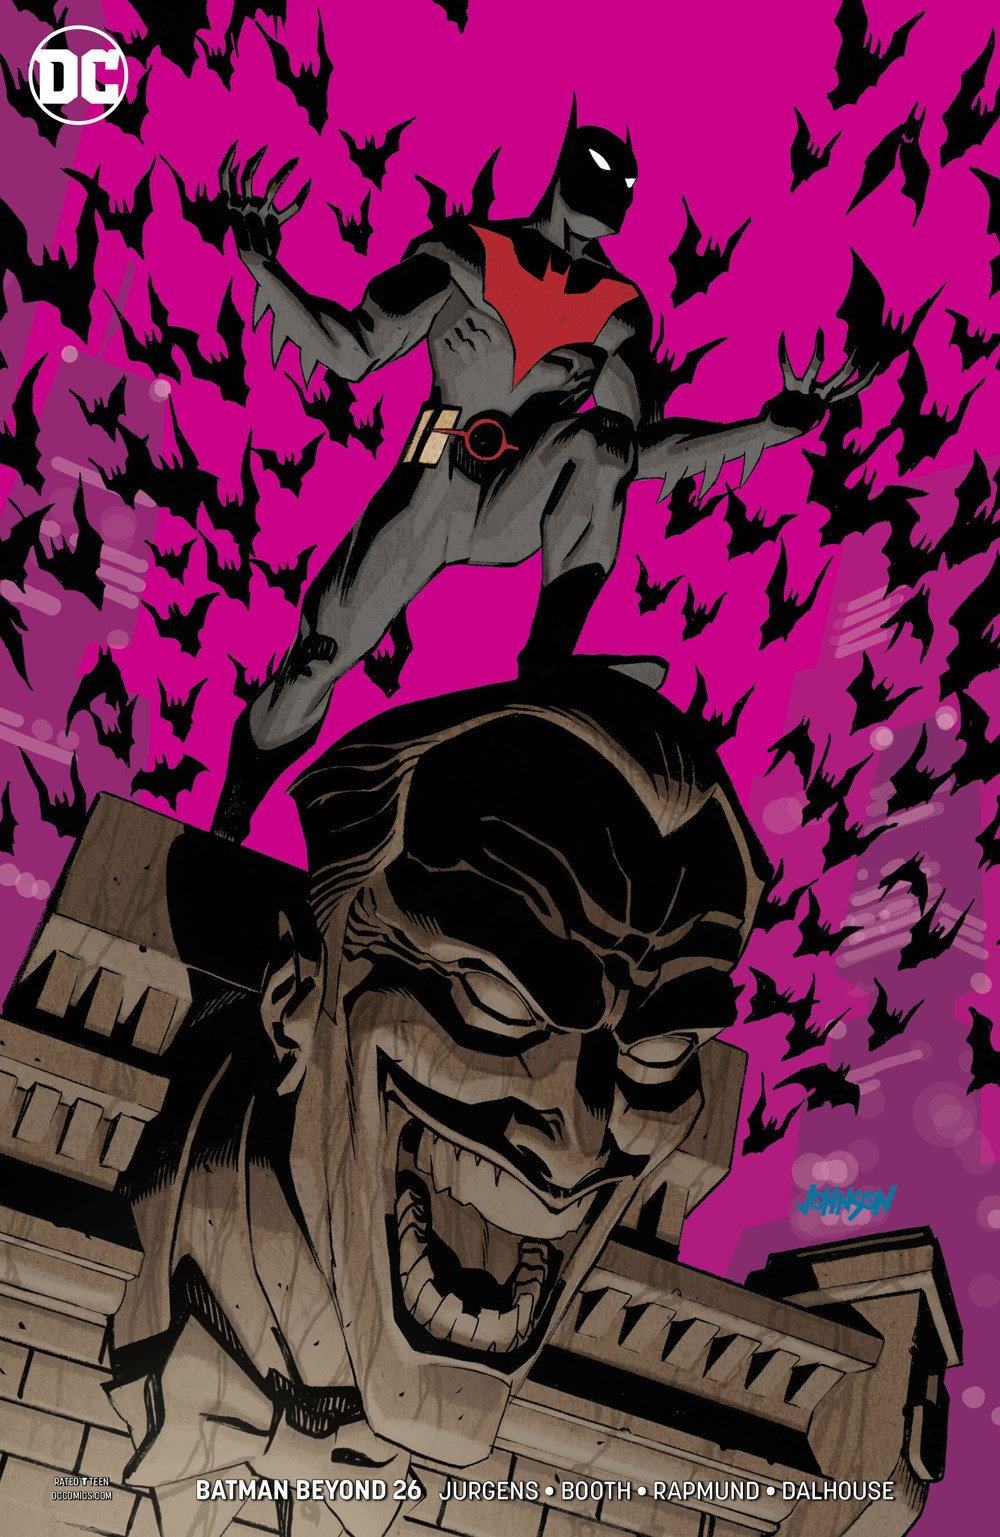 BATMAN BEYOND #26 VARIANT